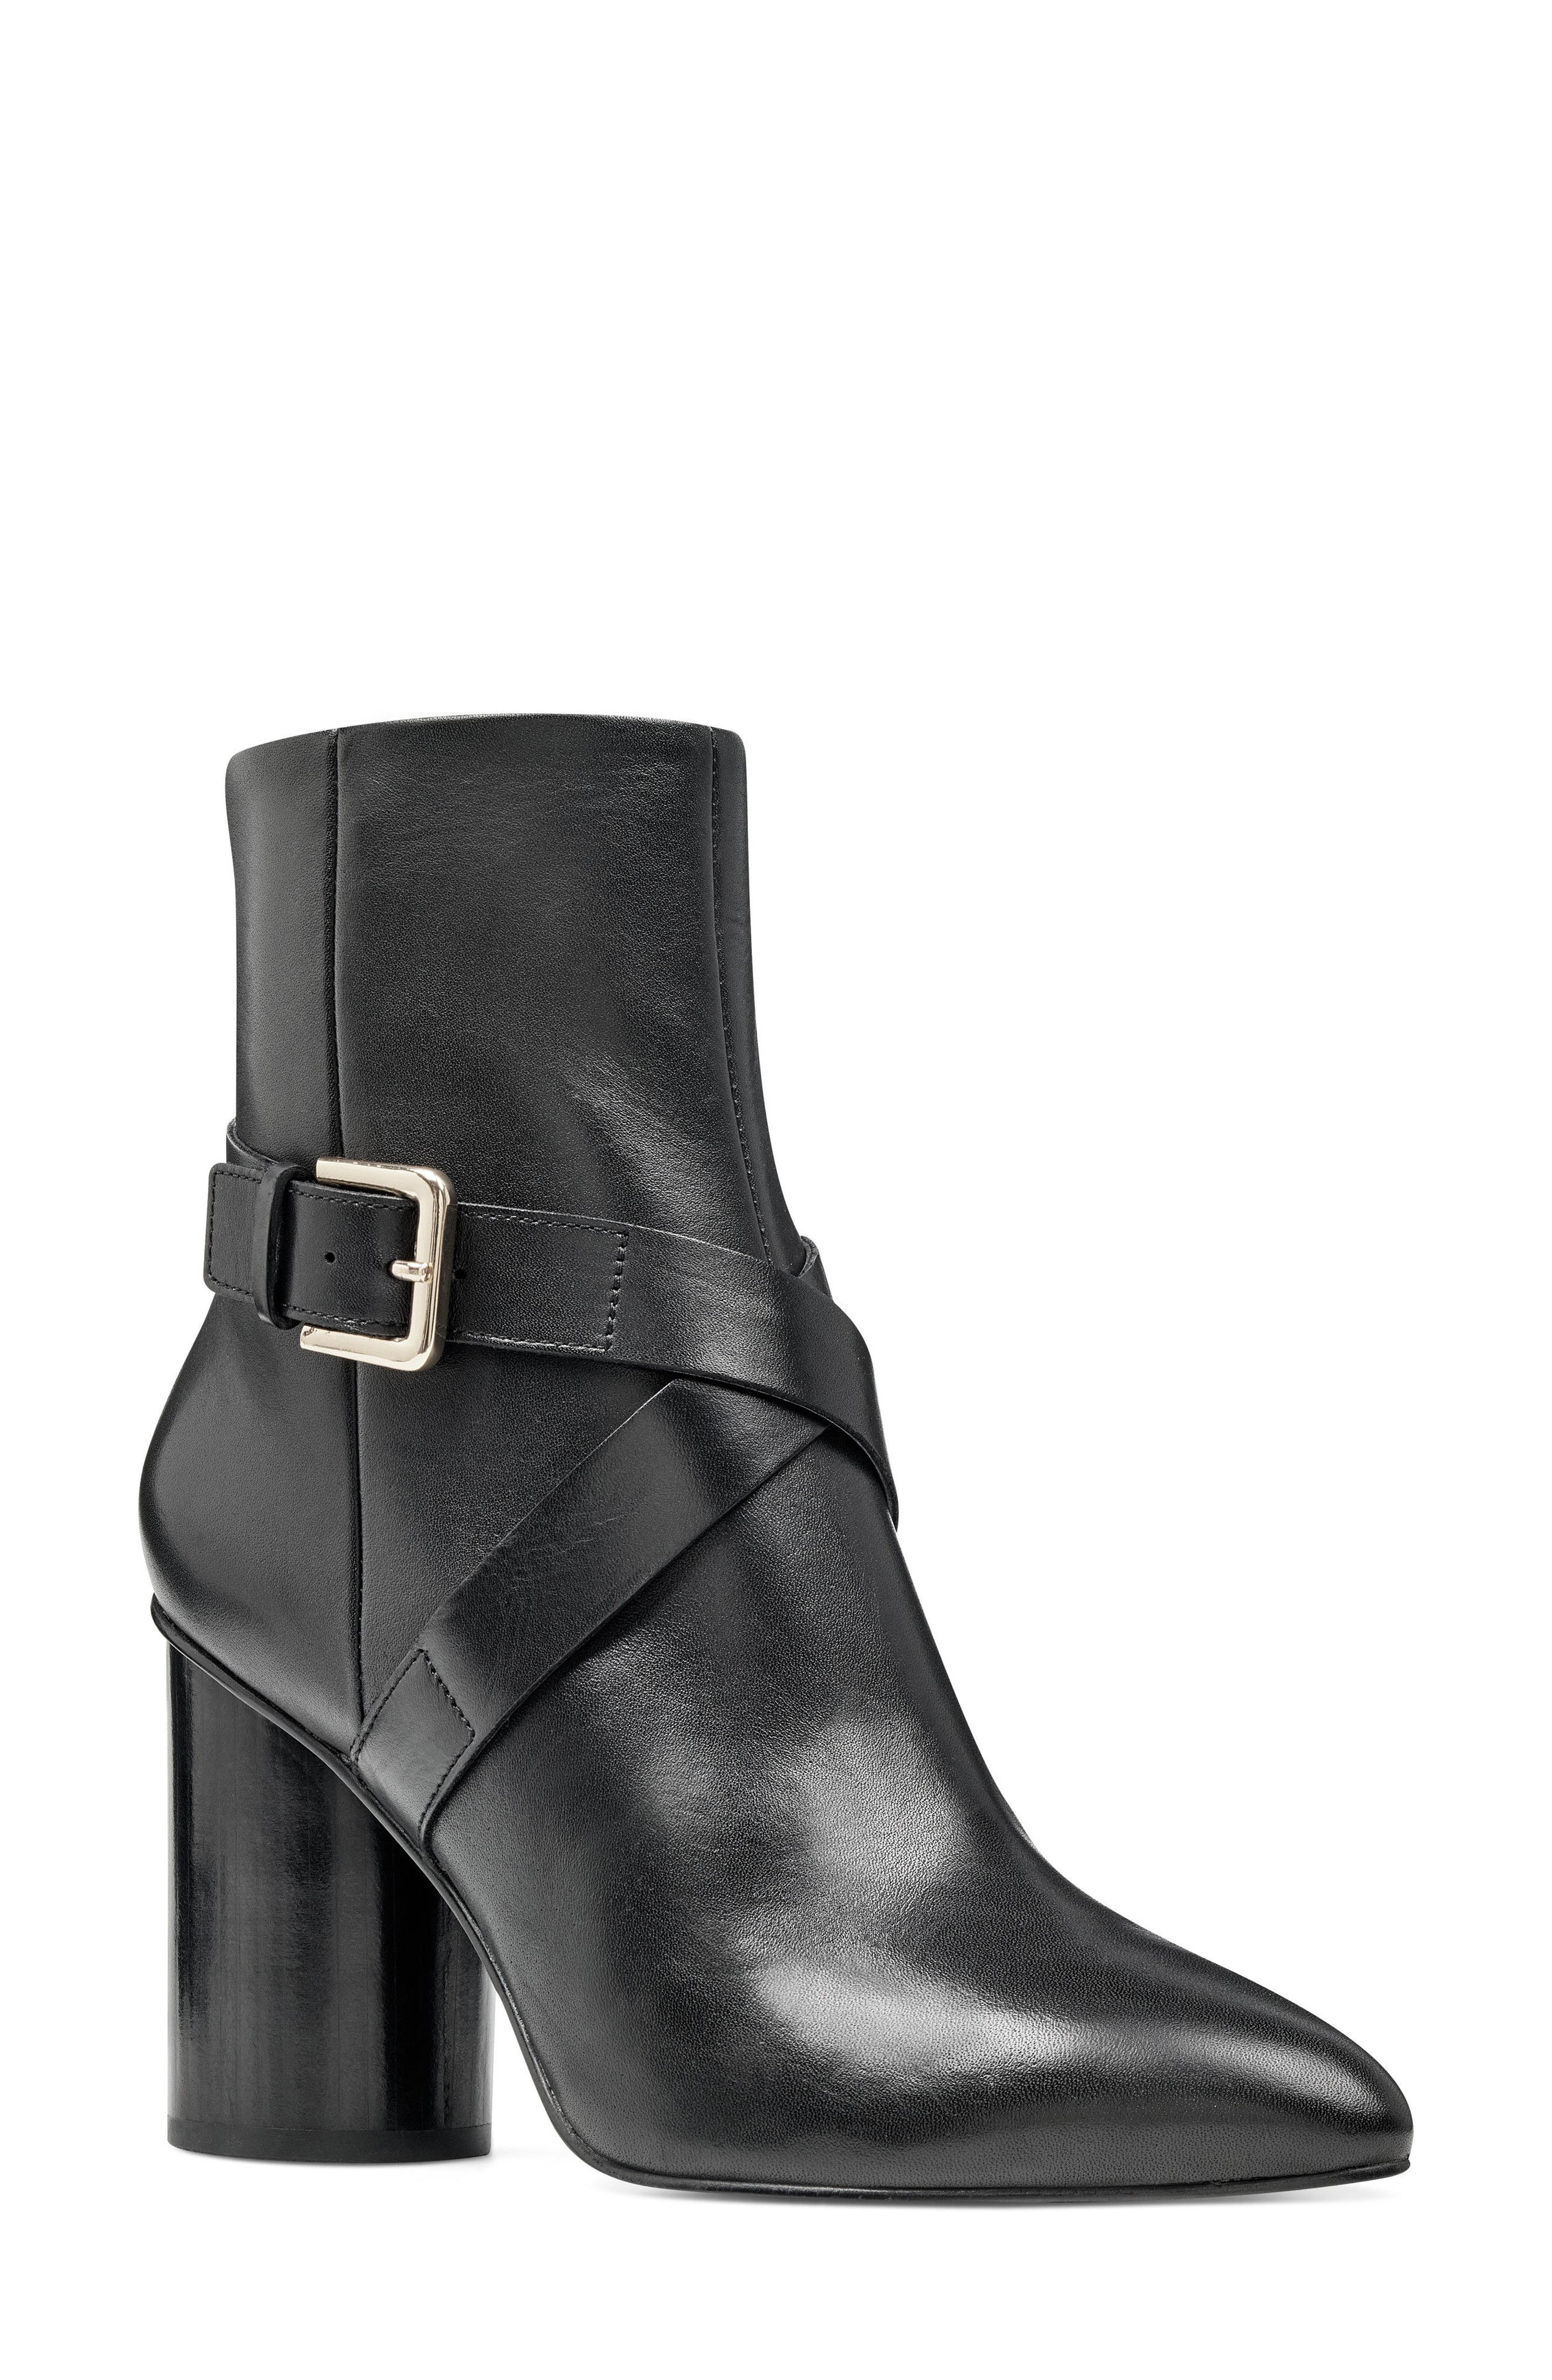 Cavanagh Pointy Toe Bootie,                             Main thumbnail 1, color,                             Black Leather